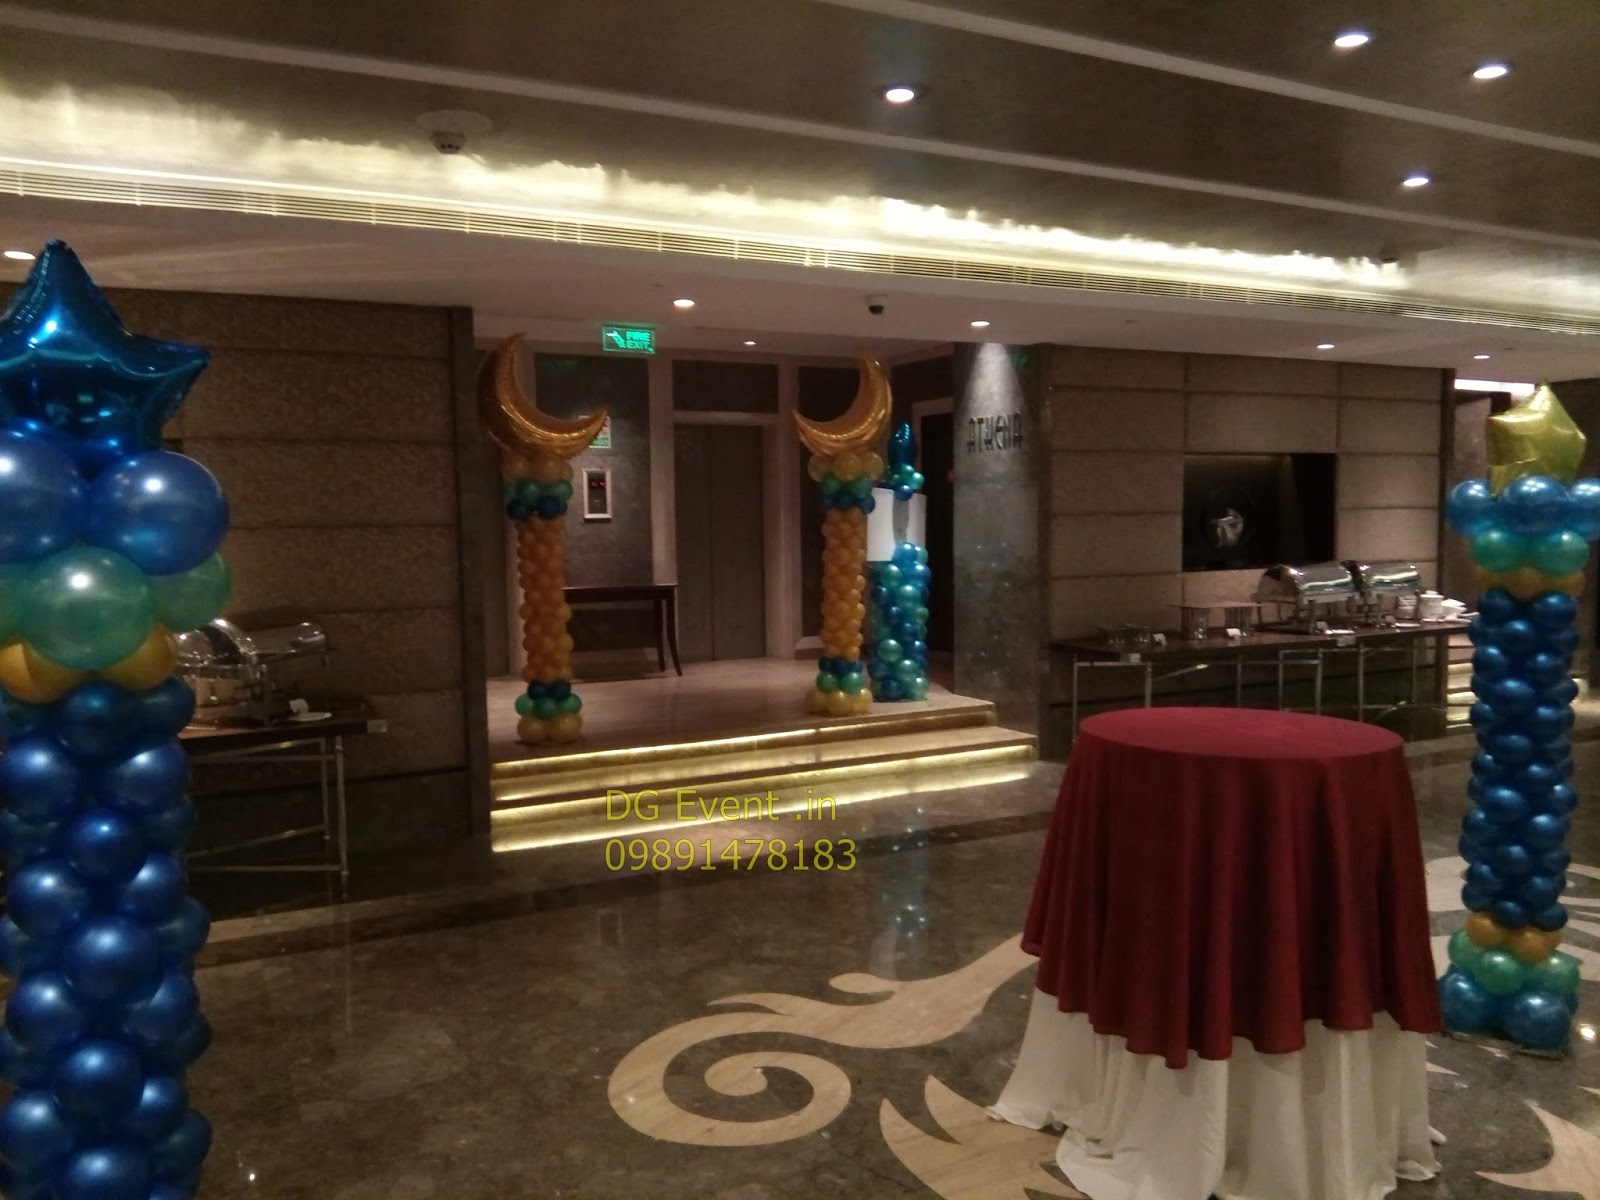 DJ Videek Event Update moon and stars birthday party theme decor in